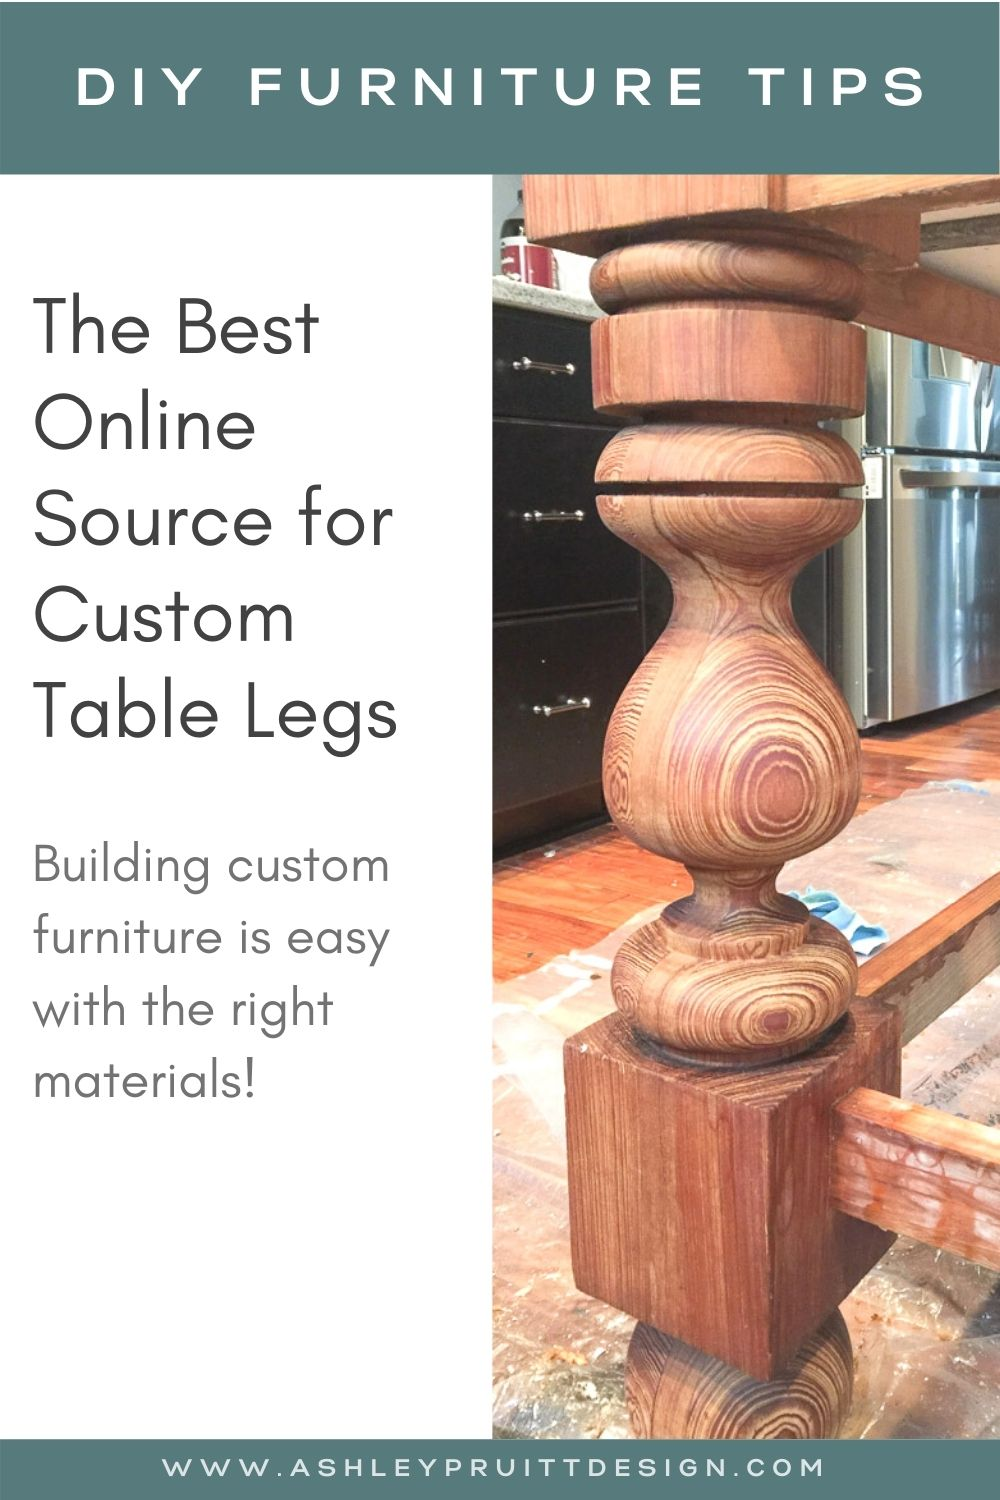 The Best Table Legs for DIY Furniture Projects